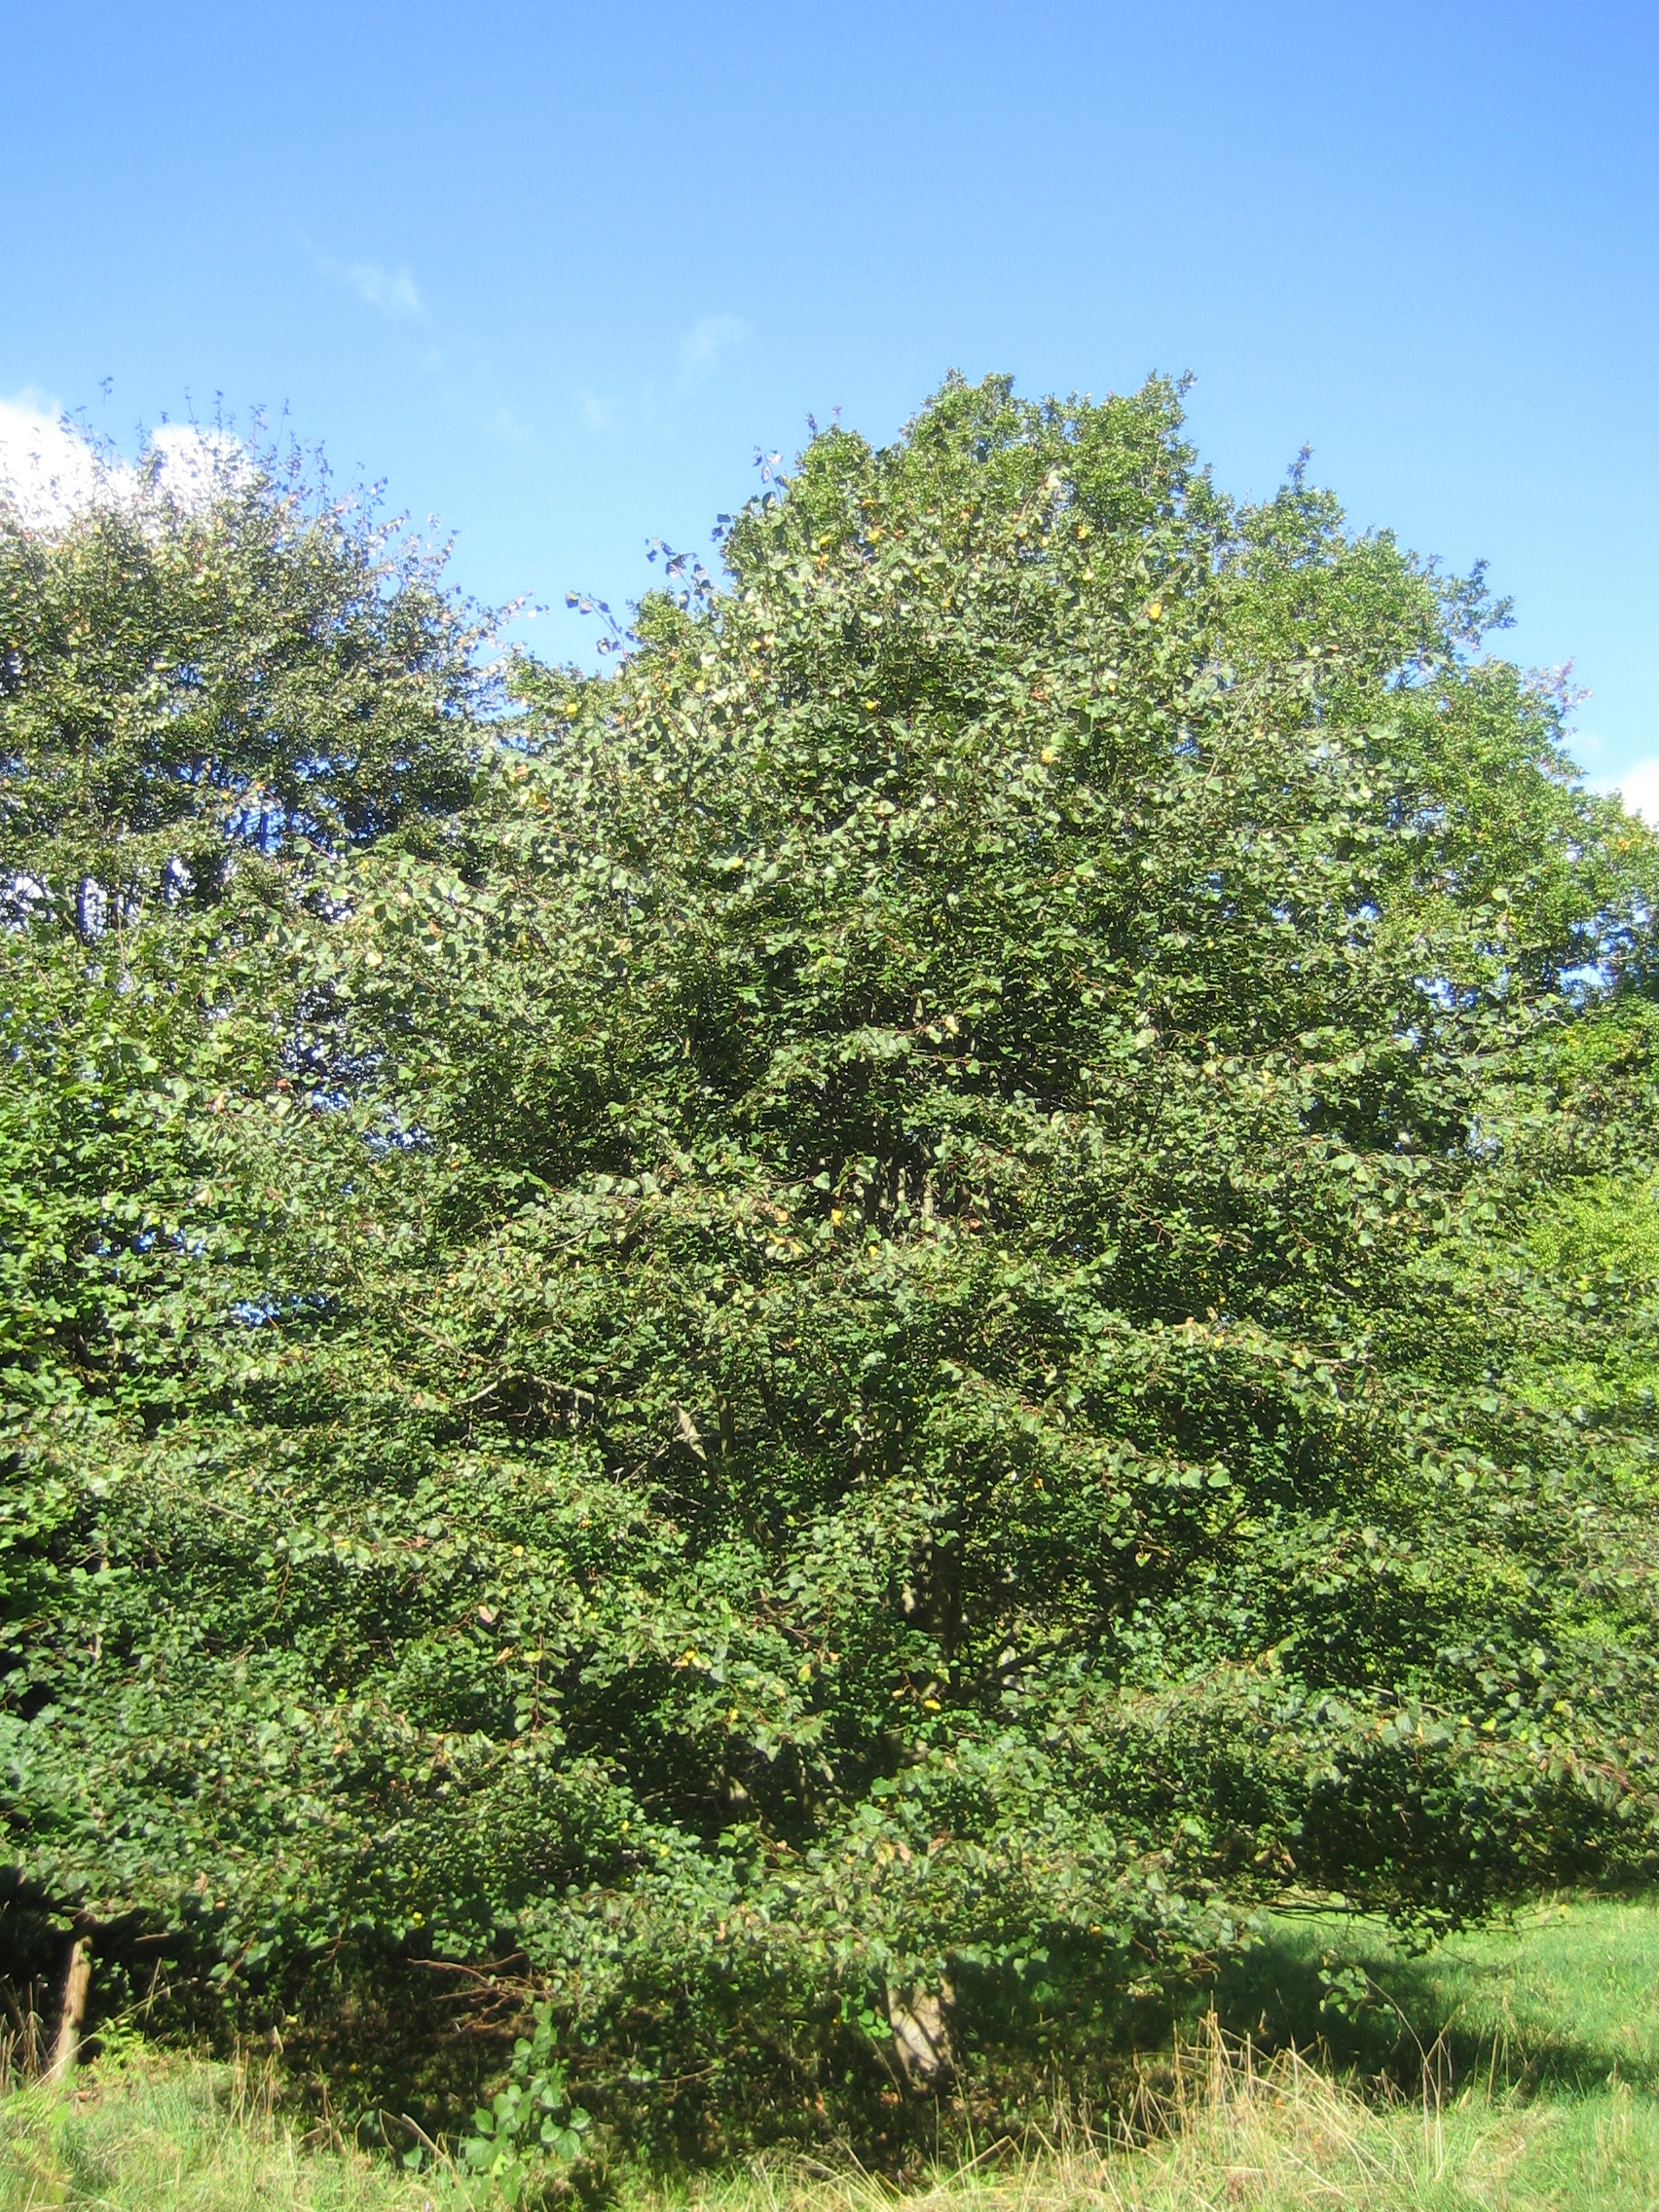 Small Leaved Lime tree